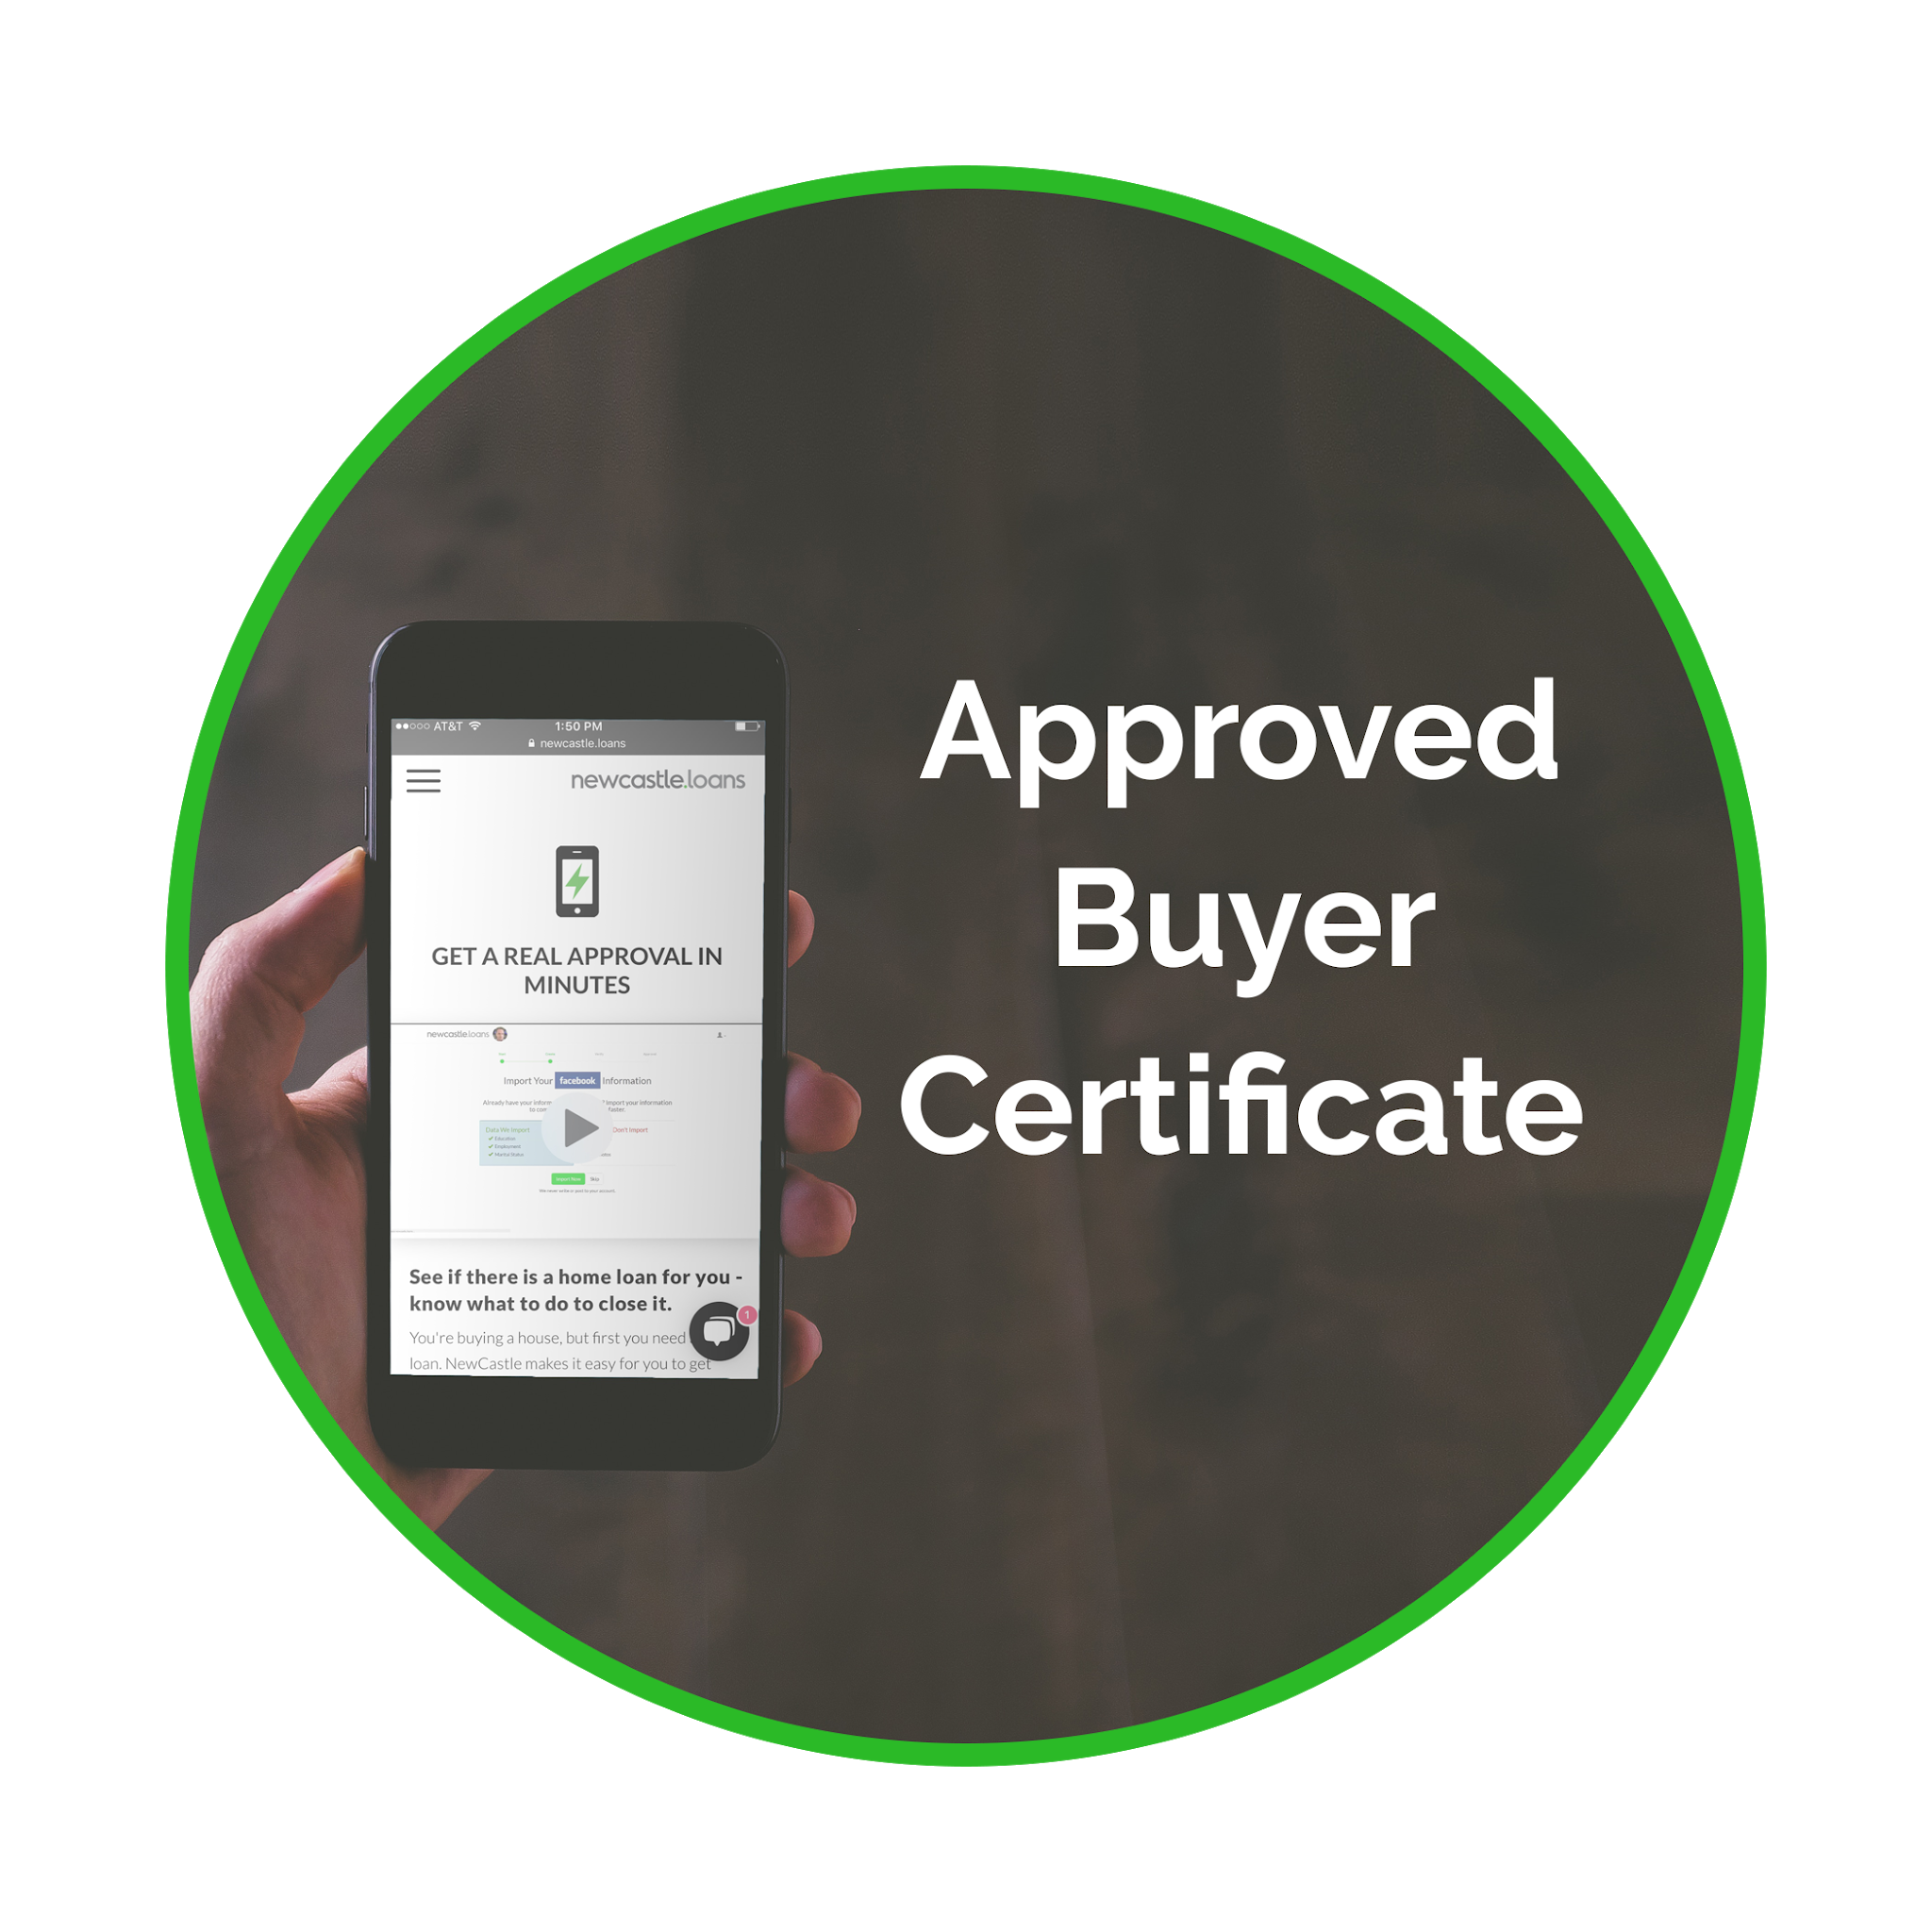 Approved Buyer Certificate